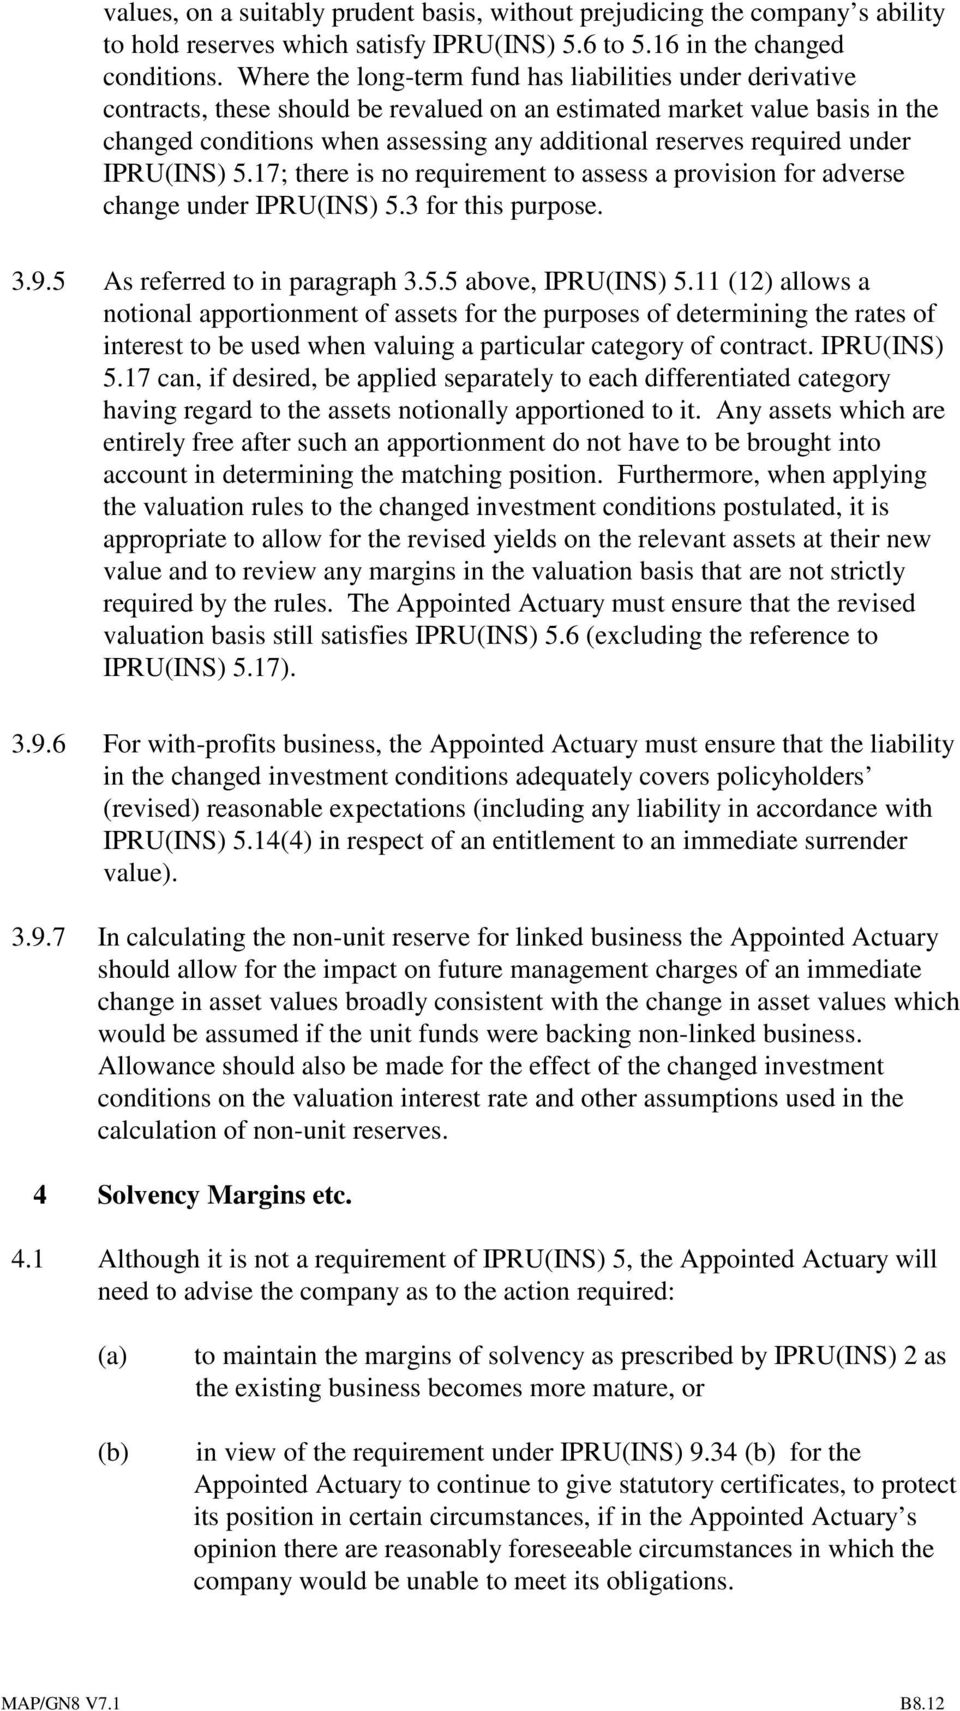 required under IPRU(INS) 5.17; there is no requirement to assess a provision for adverse change under IPRU(INS) 5.3 for this purpose. 3.9.5 As referred to in paragraph 3.5.5 above, IPRU(INS) 5.